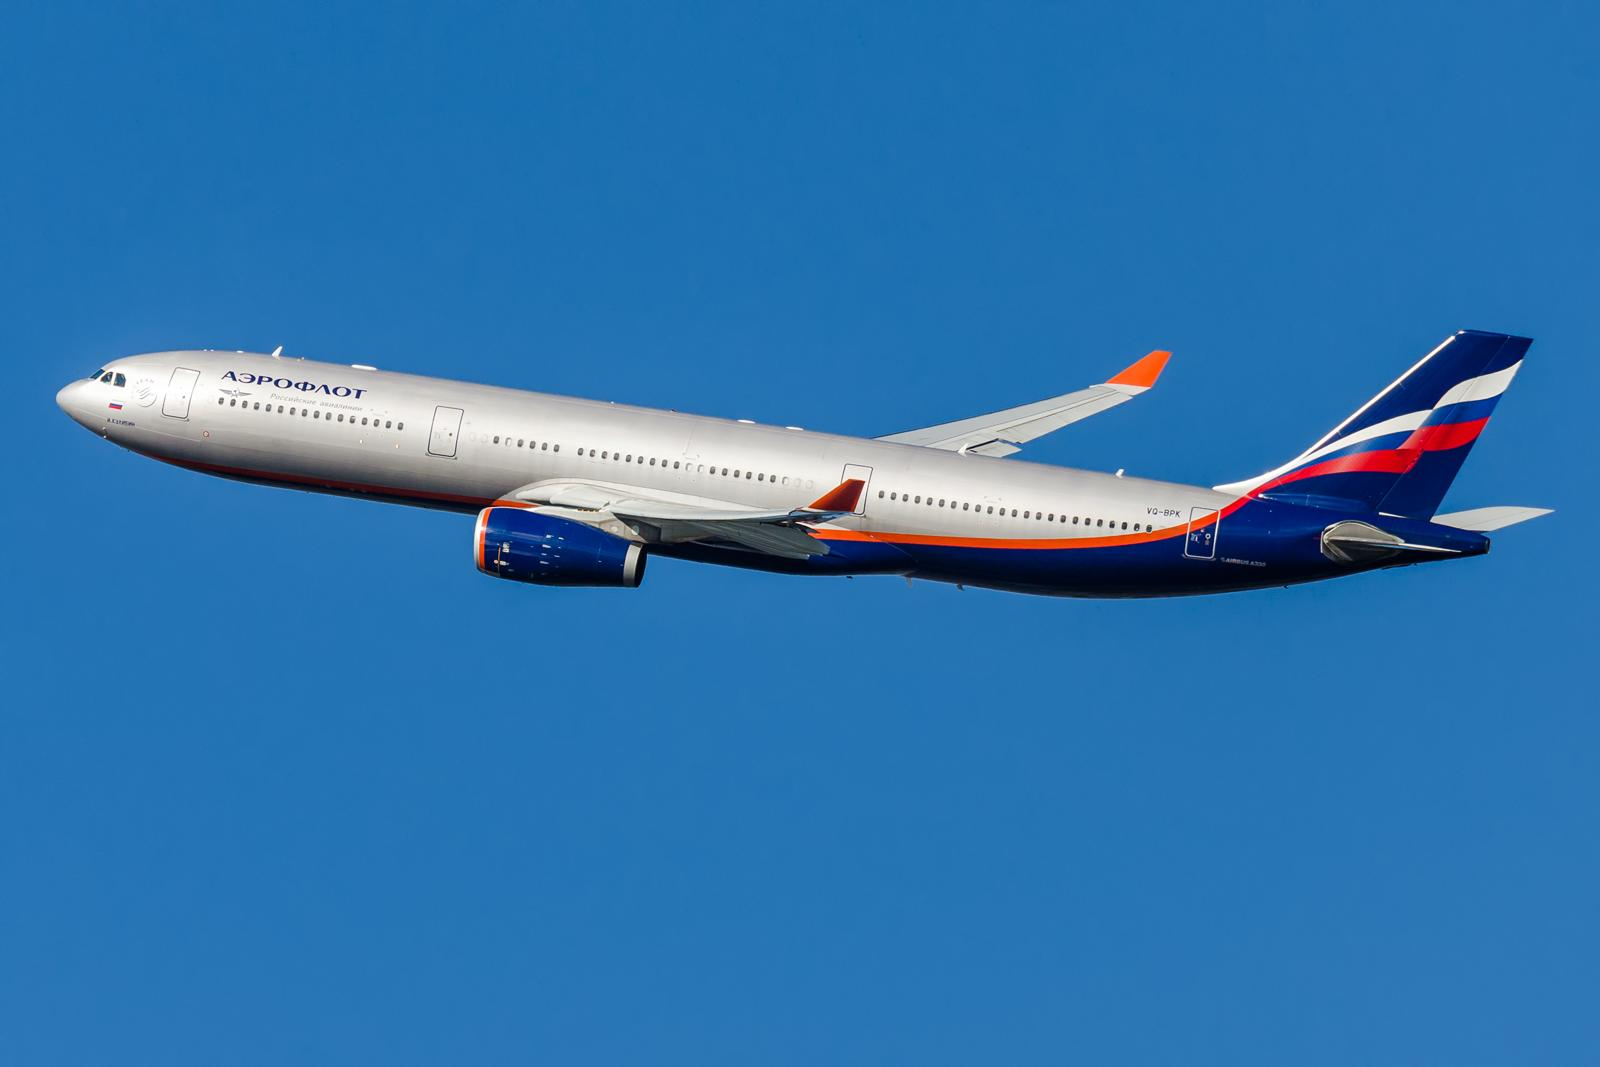 Airbus A330-300 VQ-BPK Aeroflot / Foto: Olivier Mouhot